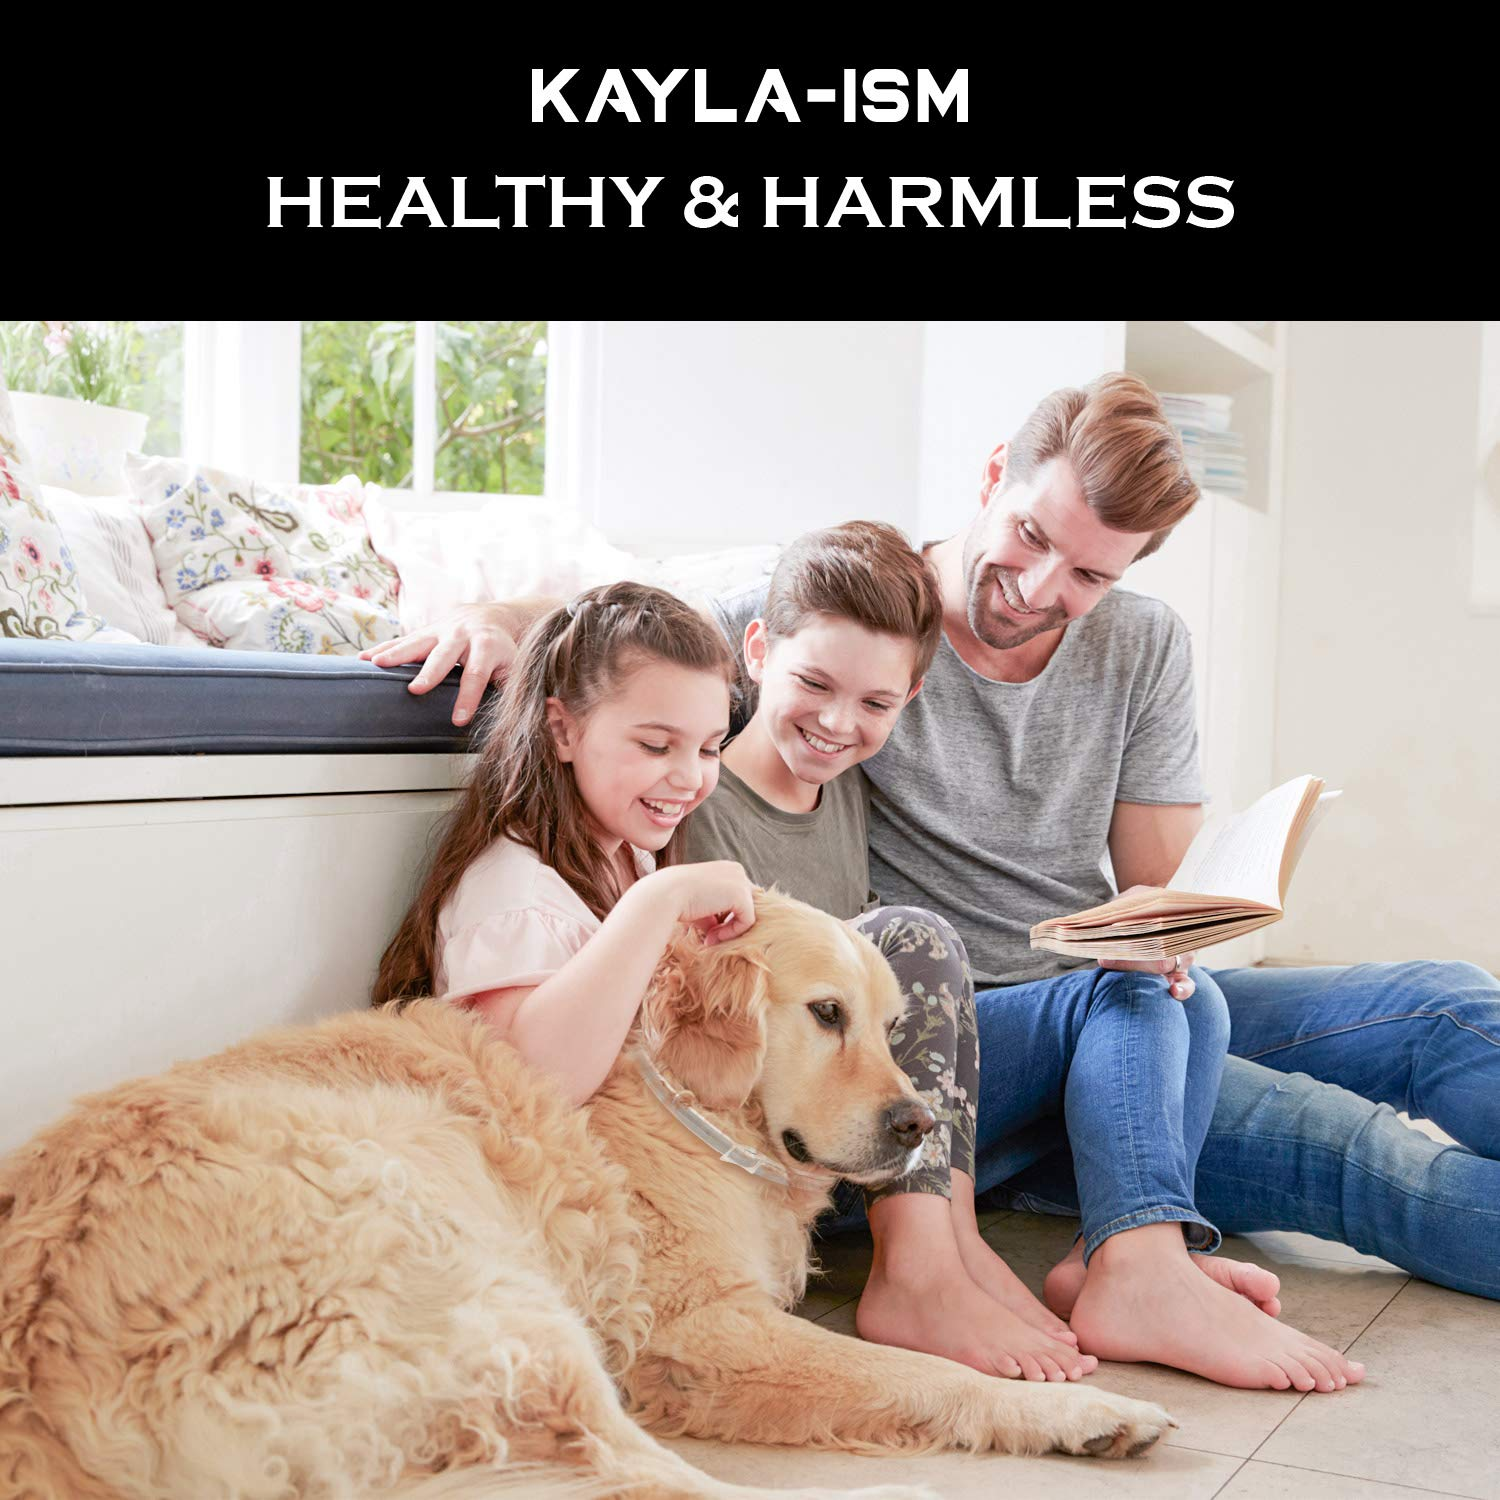 Kayla-ism Dog Flea and Tick Collar, Natural and Essential Oils, Waterproof, One Size Fits All, 8 Months Full Protection, Healthy and Harmless by Kayla-ism (Image #7)